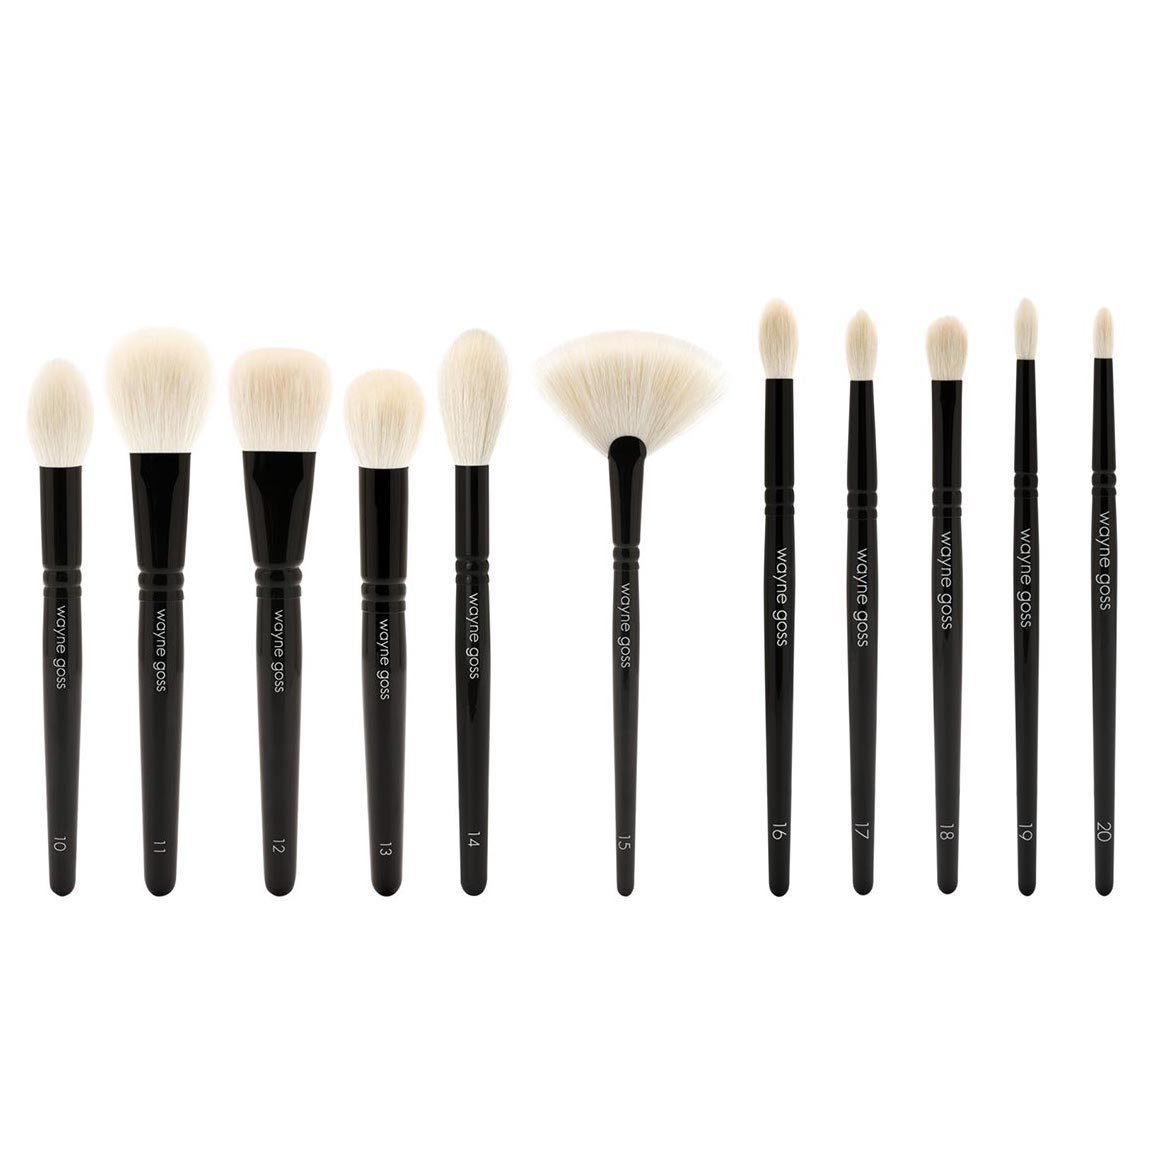 Wayne Goss The Face & Eye Set Bundle product smear.